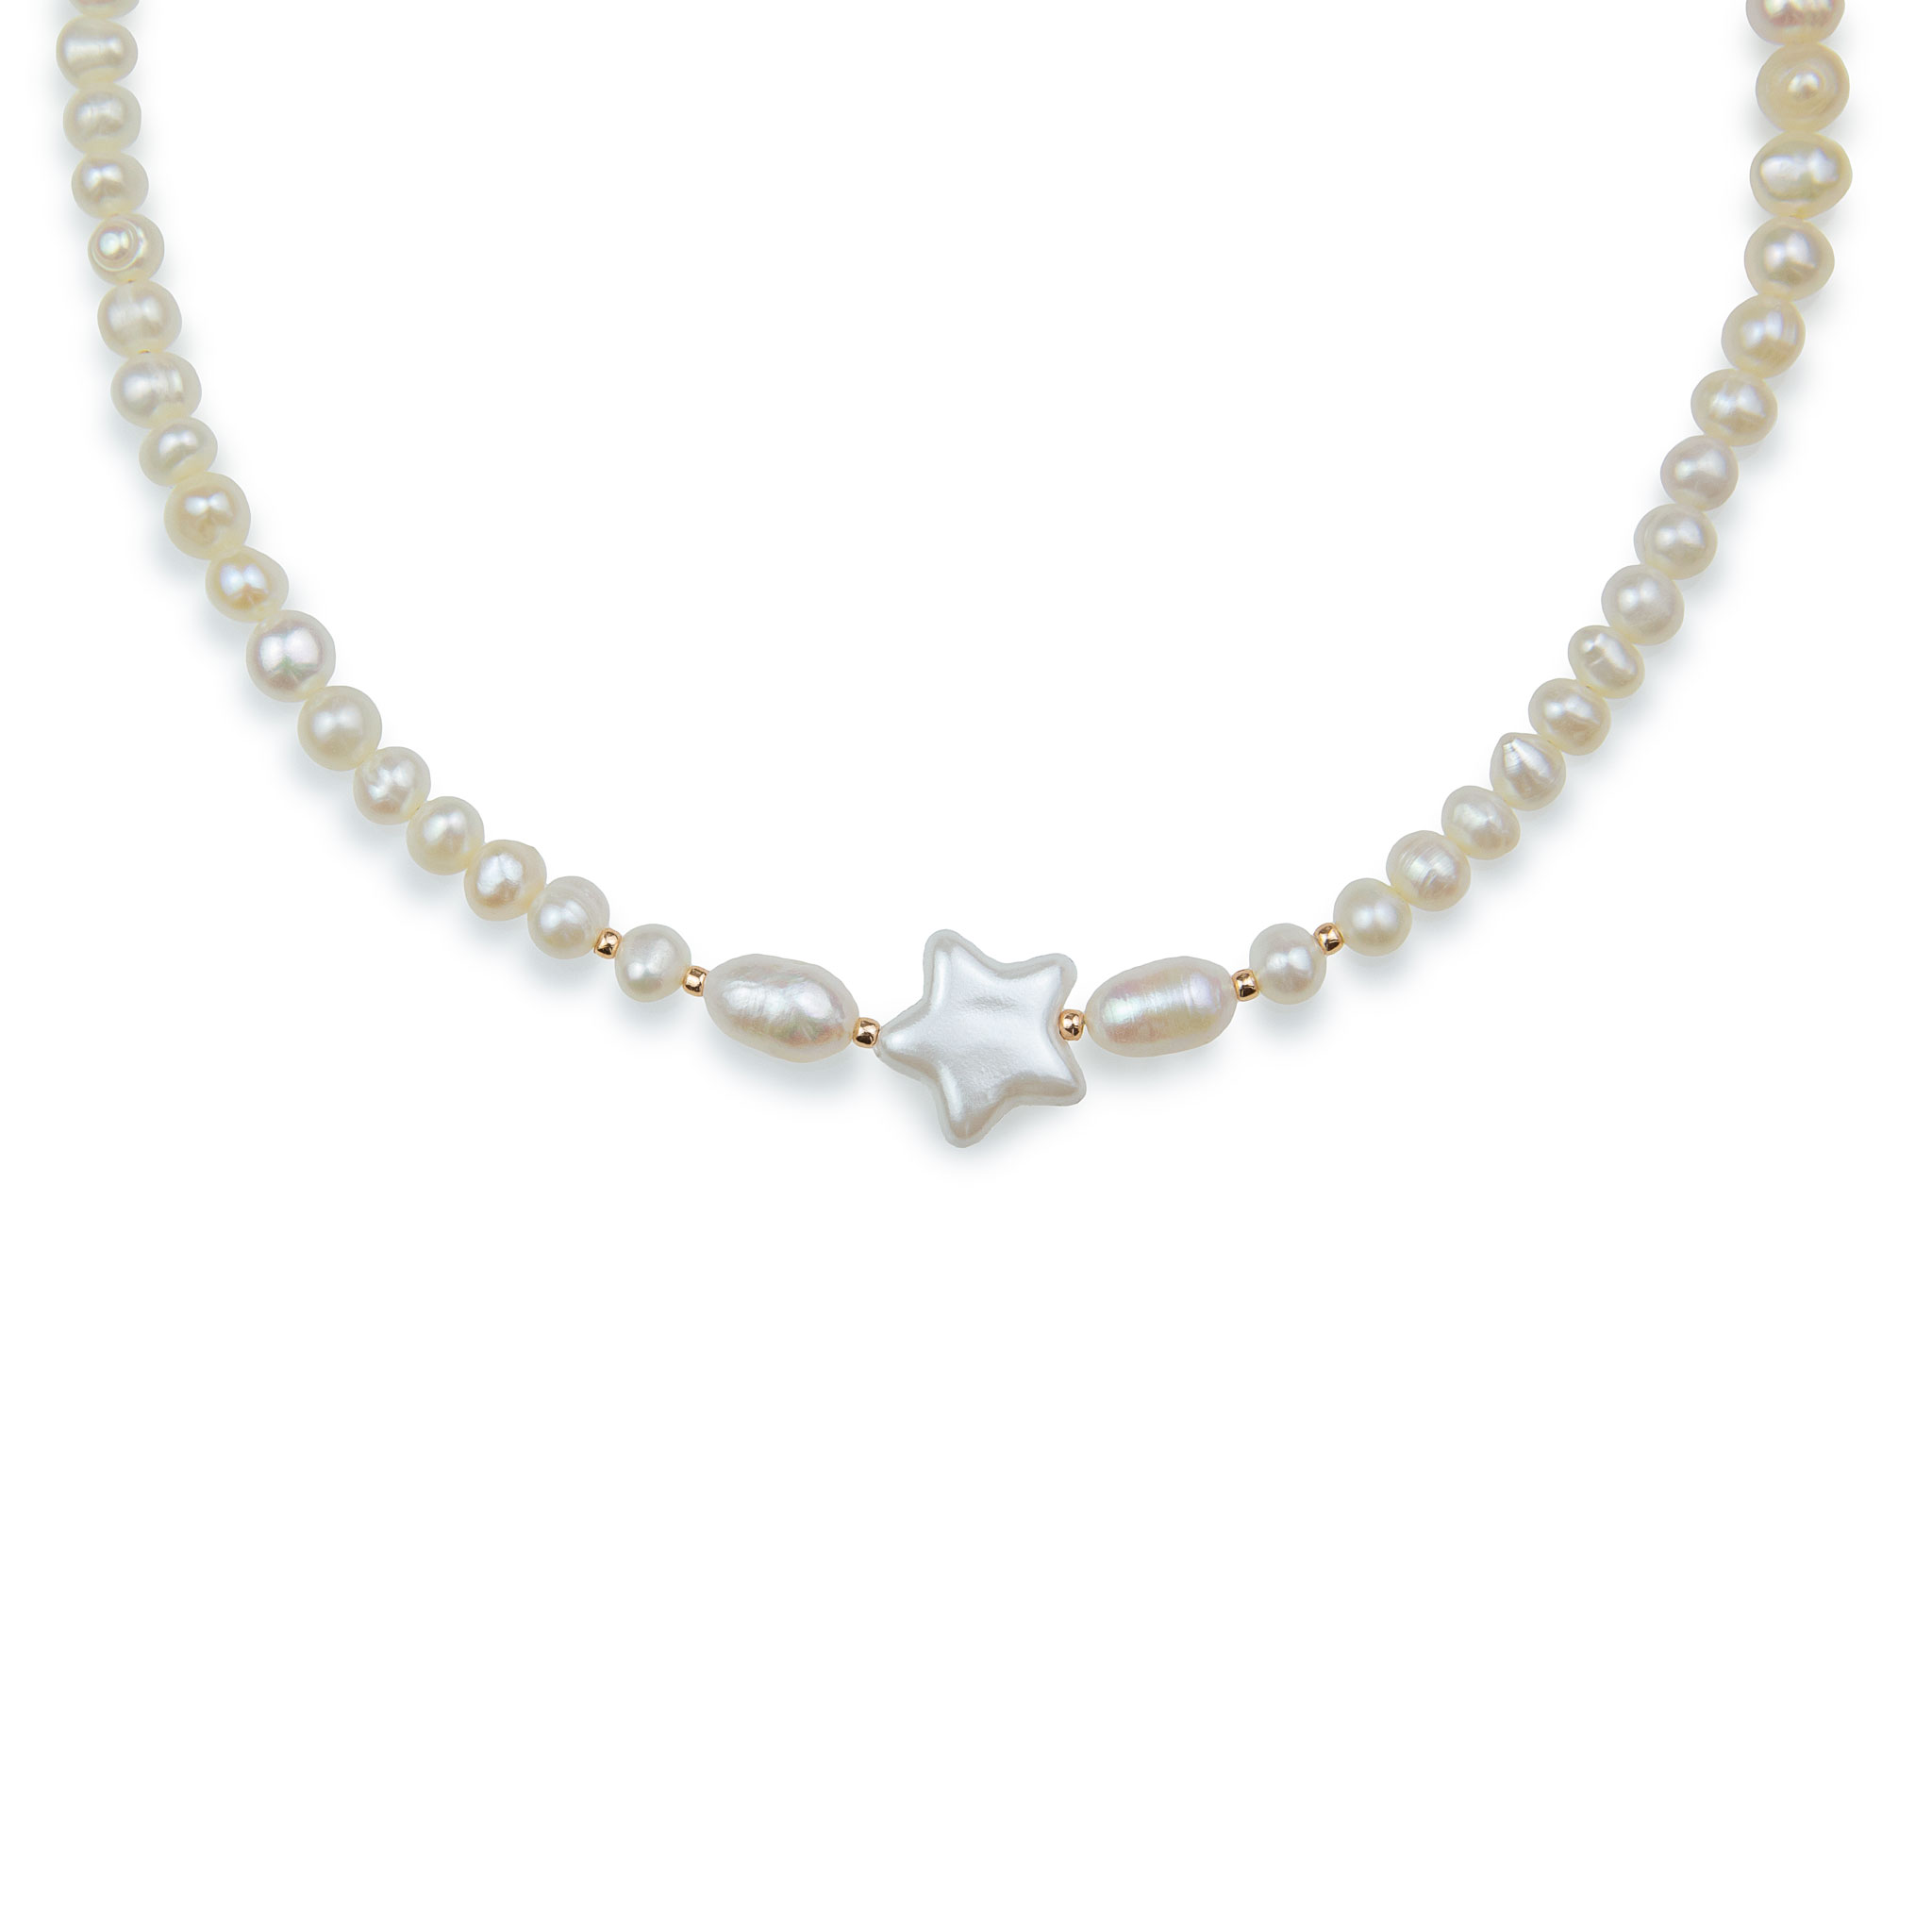 Freshwater Pearl Necklace Decorated with a Star